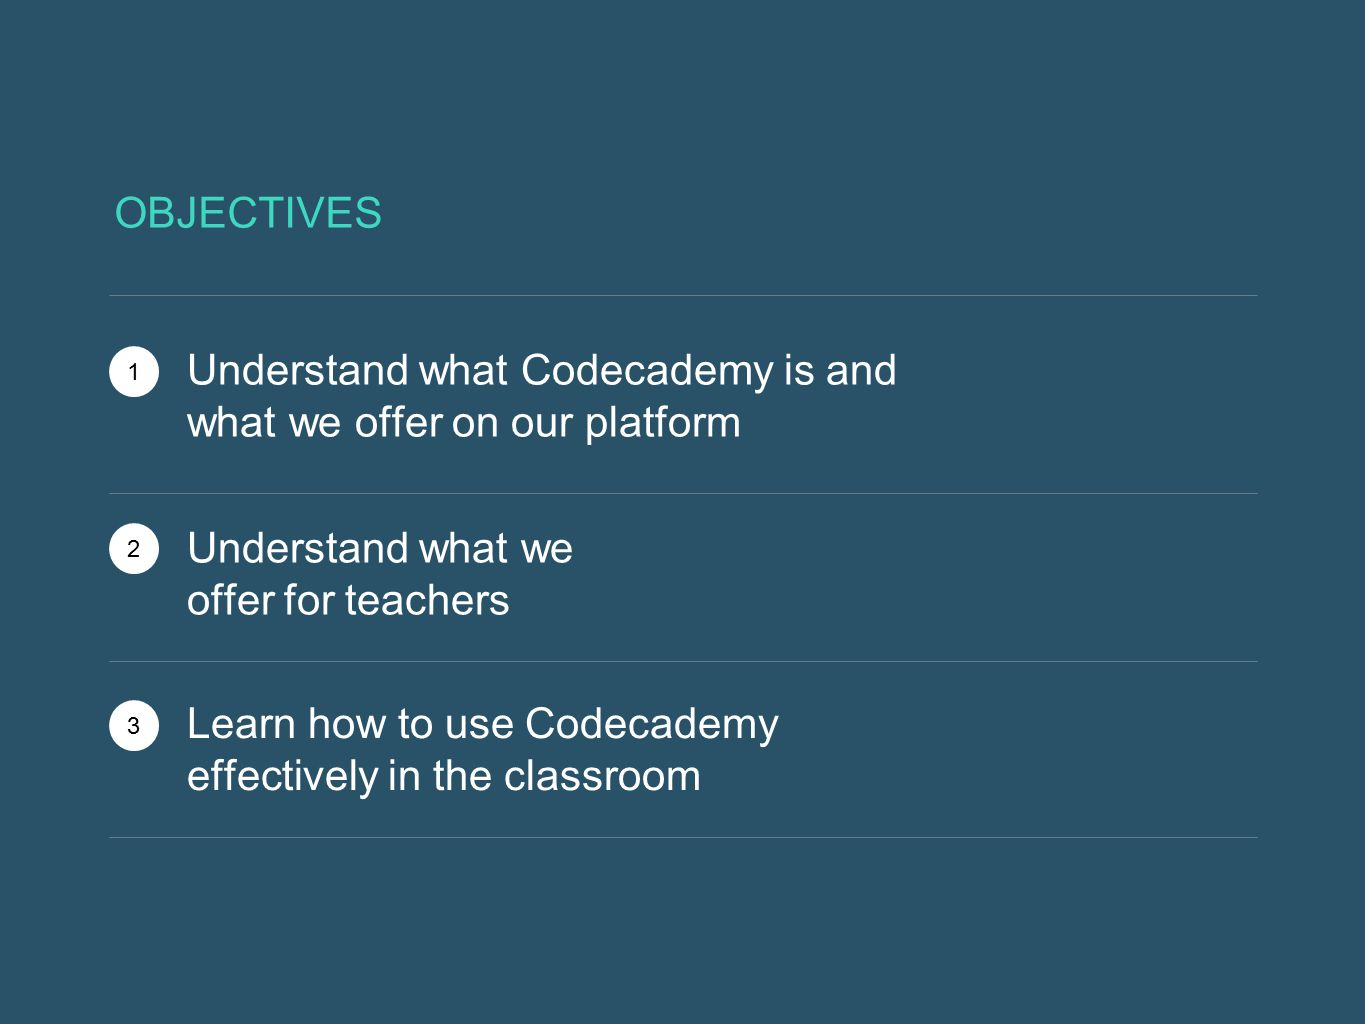 Understand what Codecademy is and what we offer on our platform